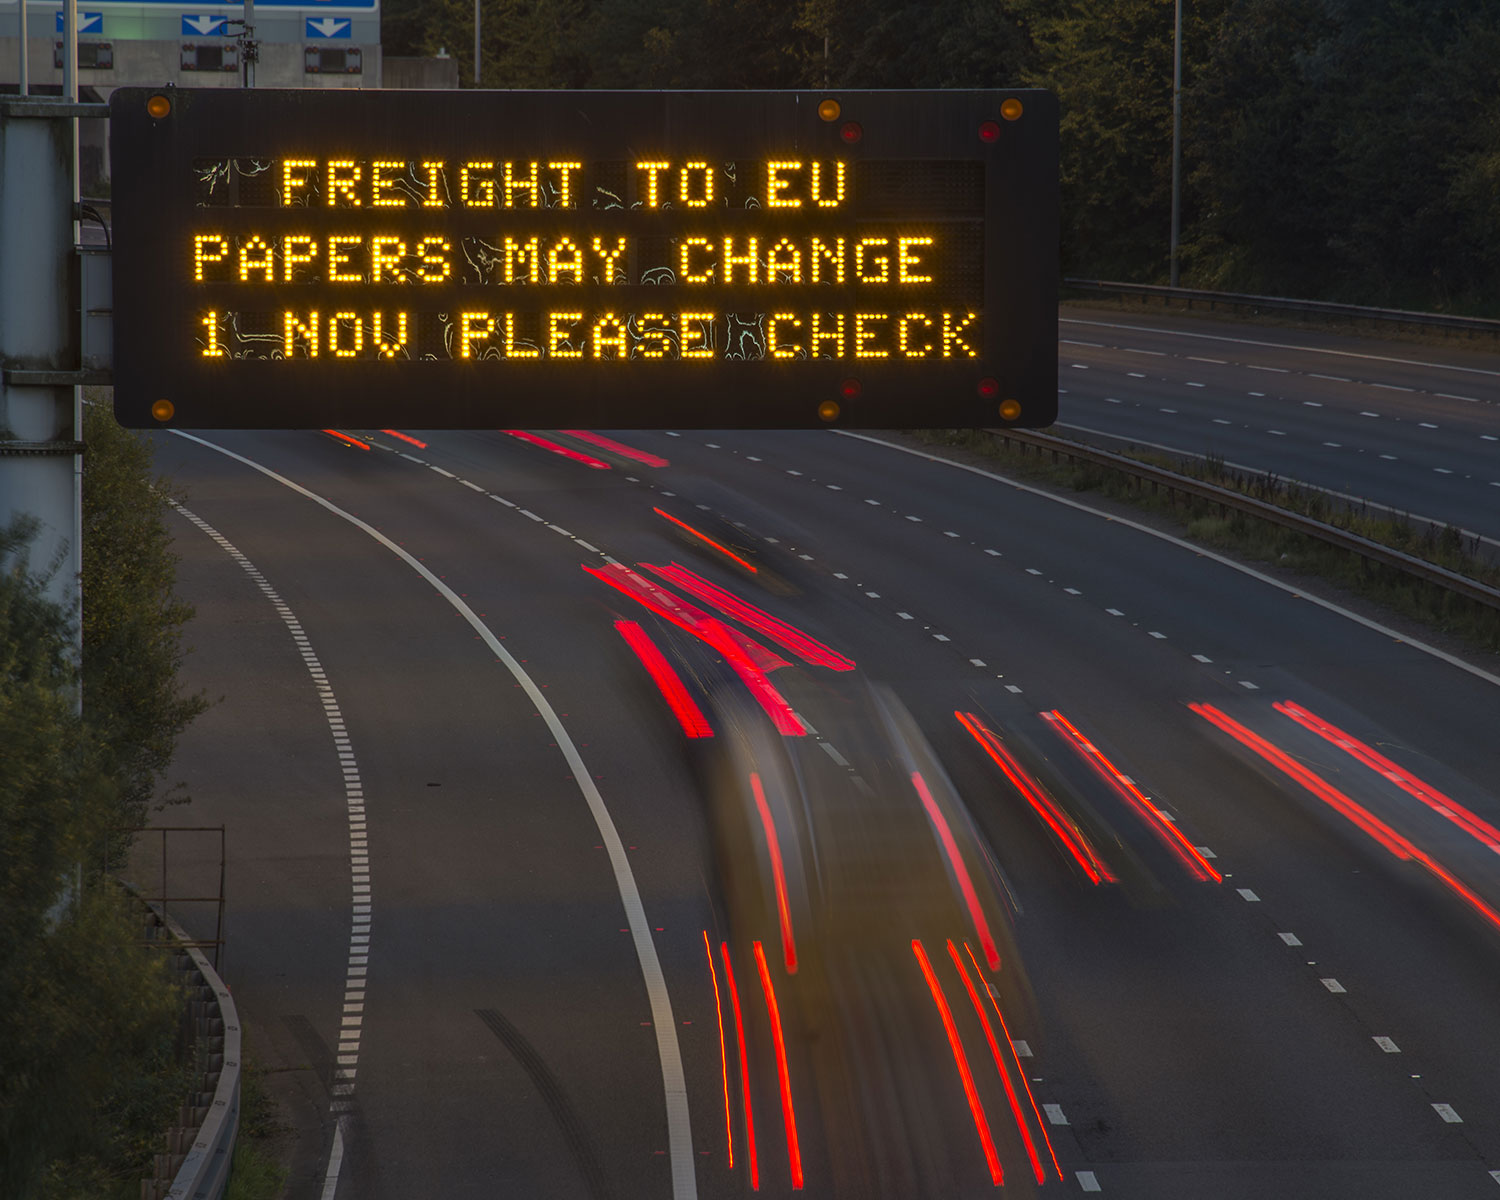 Brexit Freight UK Motorway Signage With Blurred Vehicles